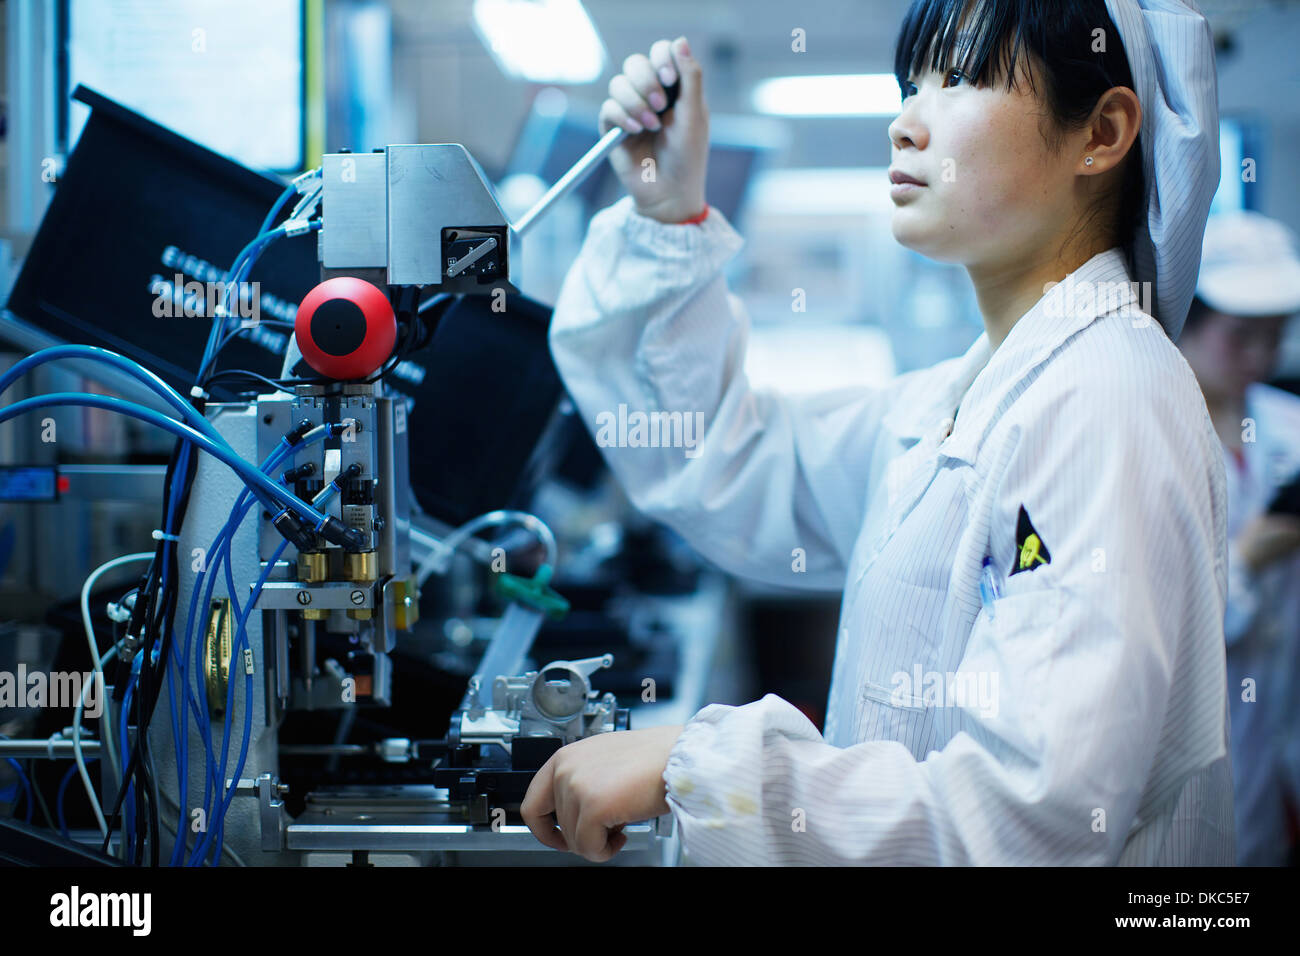 Worker at small parts manufacturing factory in China - Stock Image